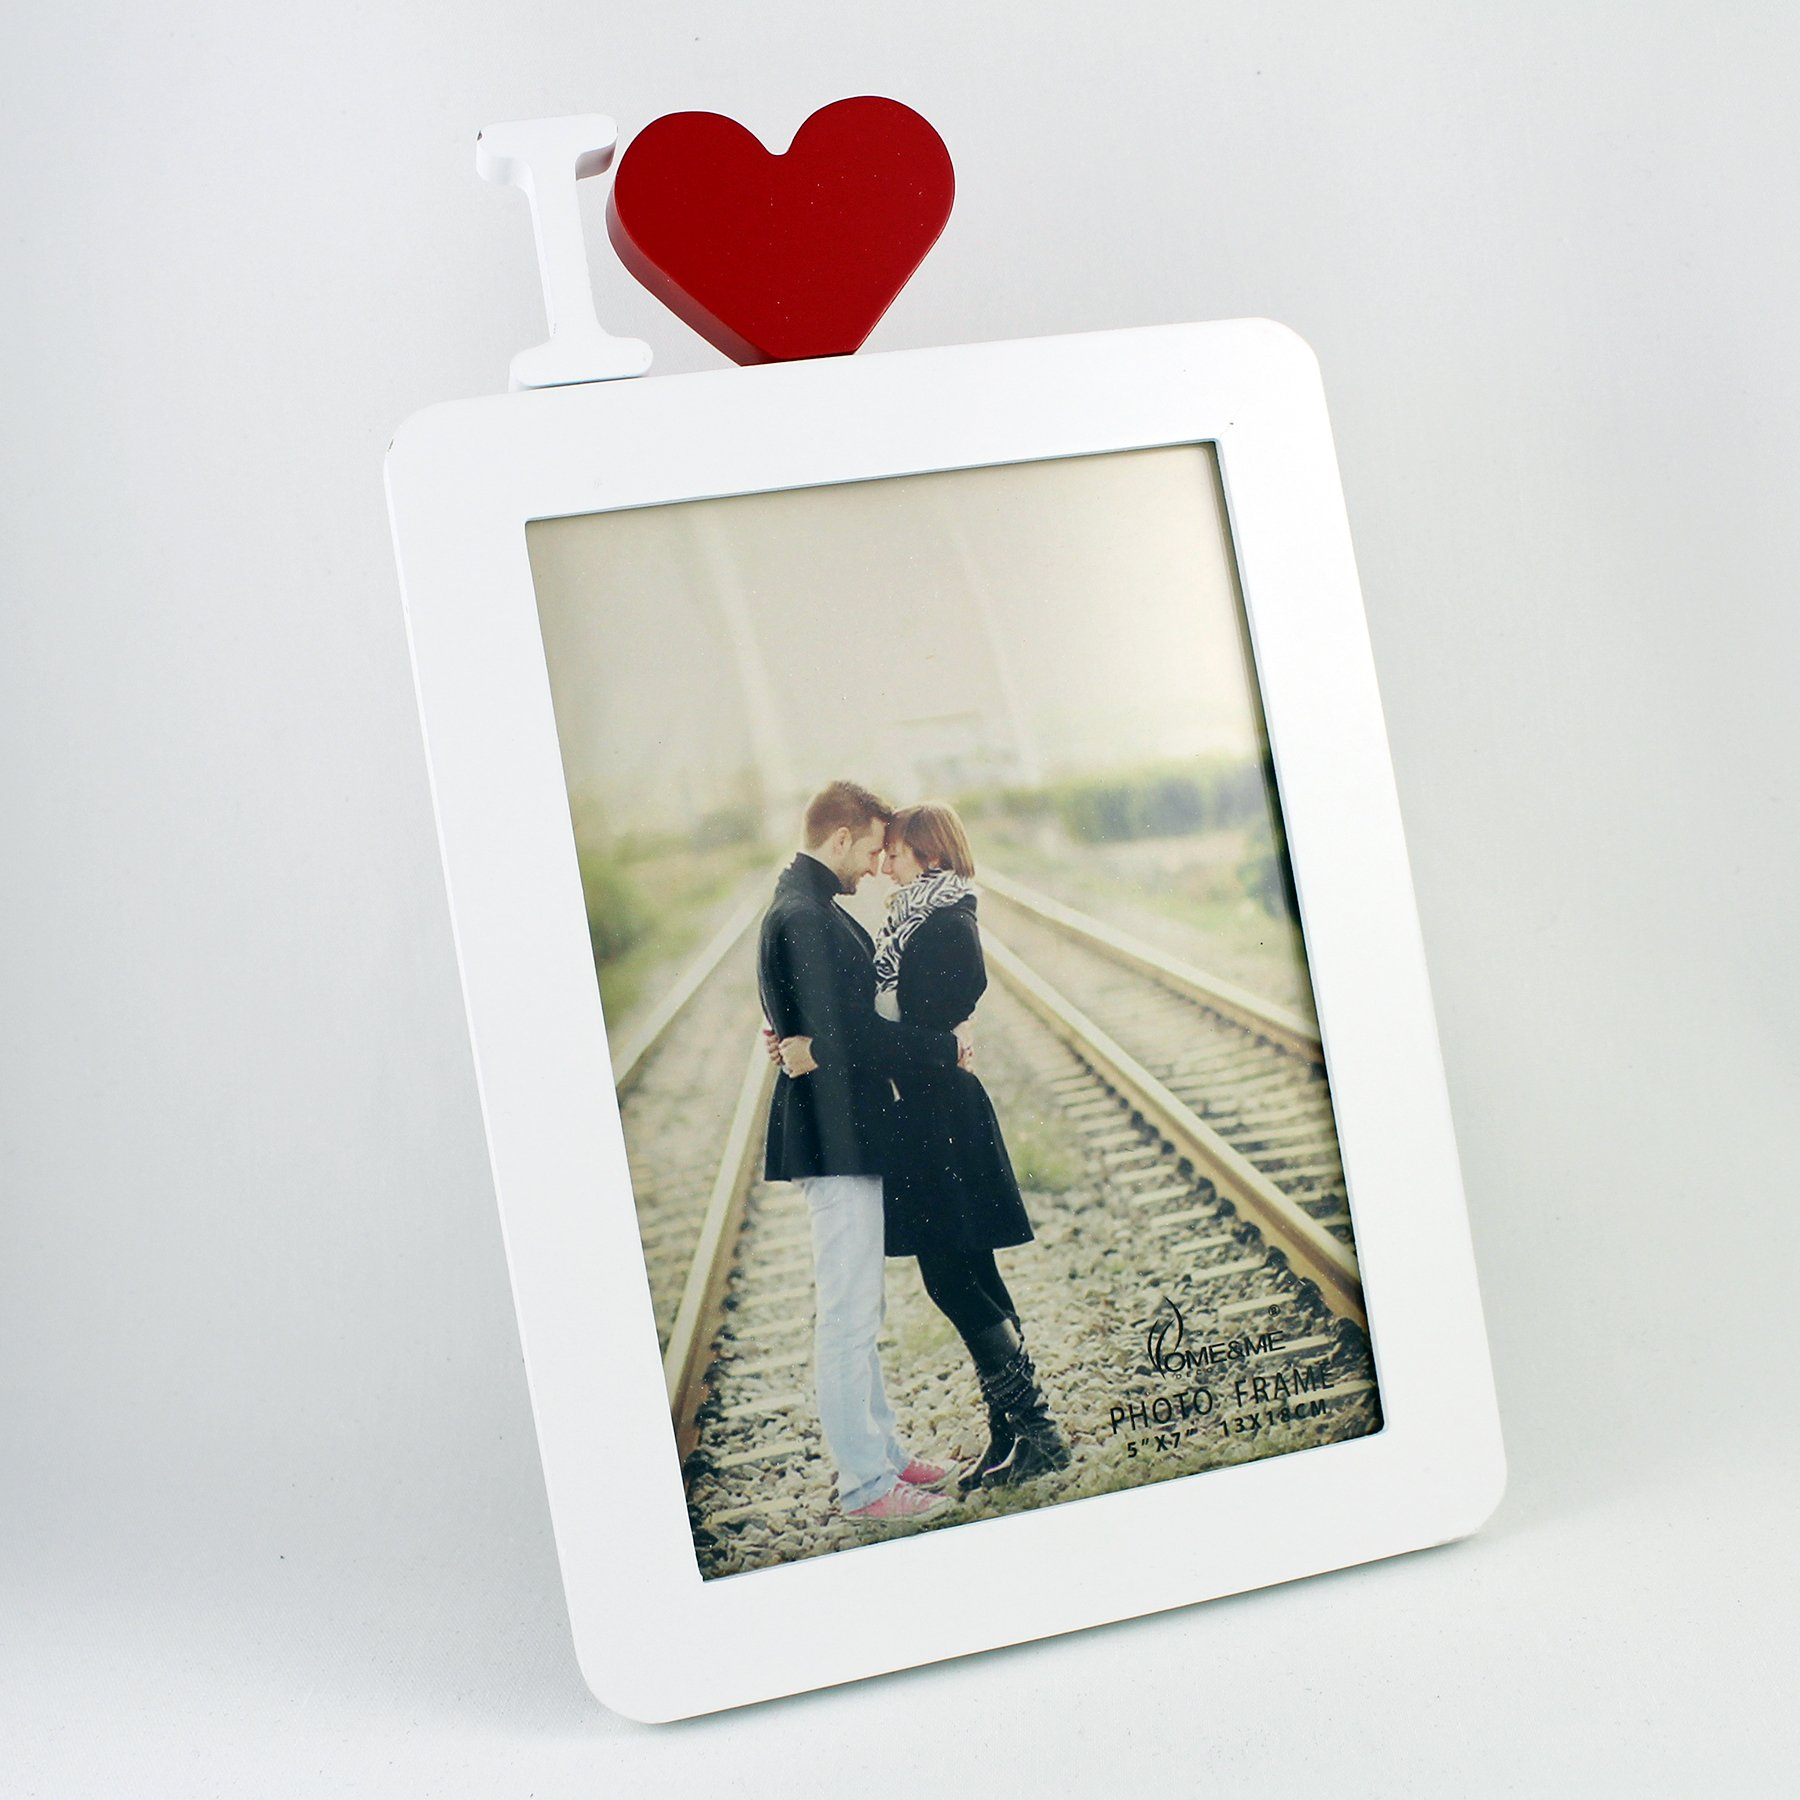 5x7'' Wooden Photo Frame in White with I Heart in Red, I Love You, Contemporary Shabby Chic, Perfect for Mother's Day, Birthday or Anniversary Style, Picture Size 5x7 (I HEART in RED, 5 x 7)